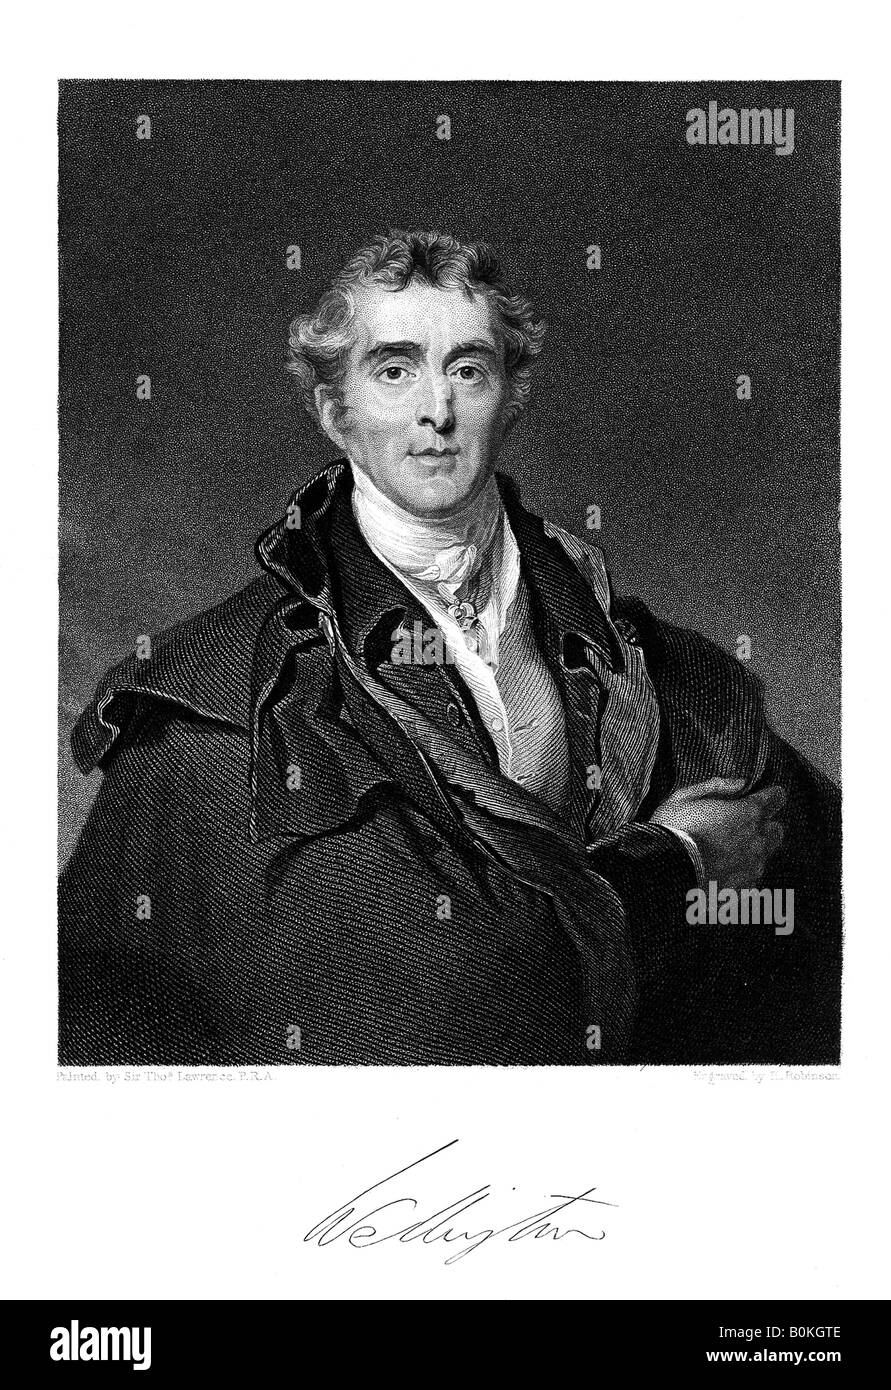 Duke of Wellington, (1769-1852), 19th Century. Artist: Duke of Wellington; H Robinson - Stock Image